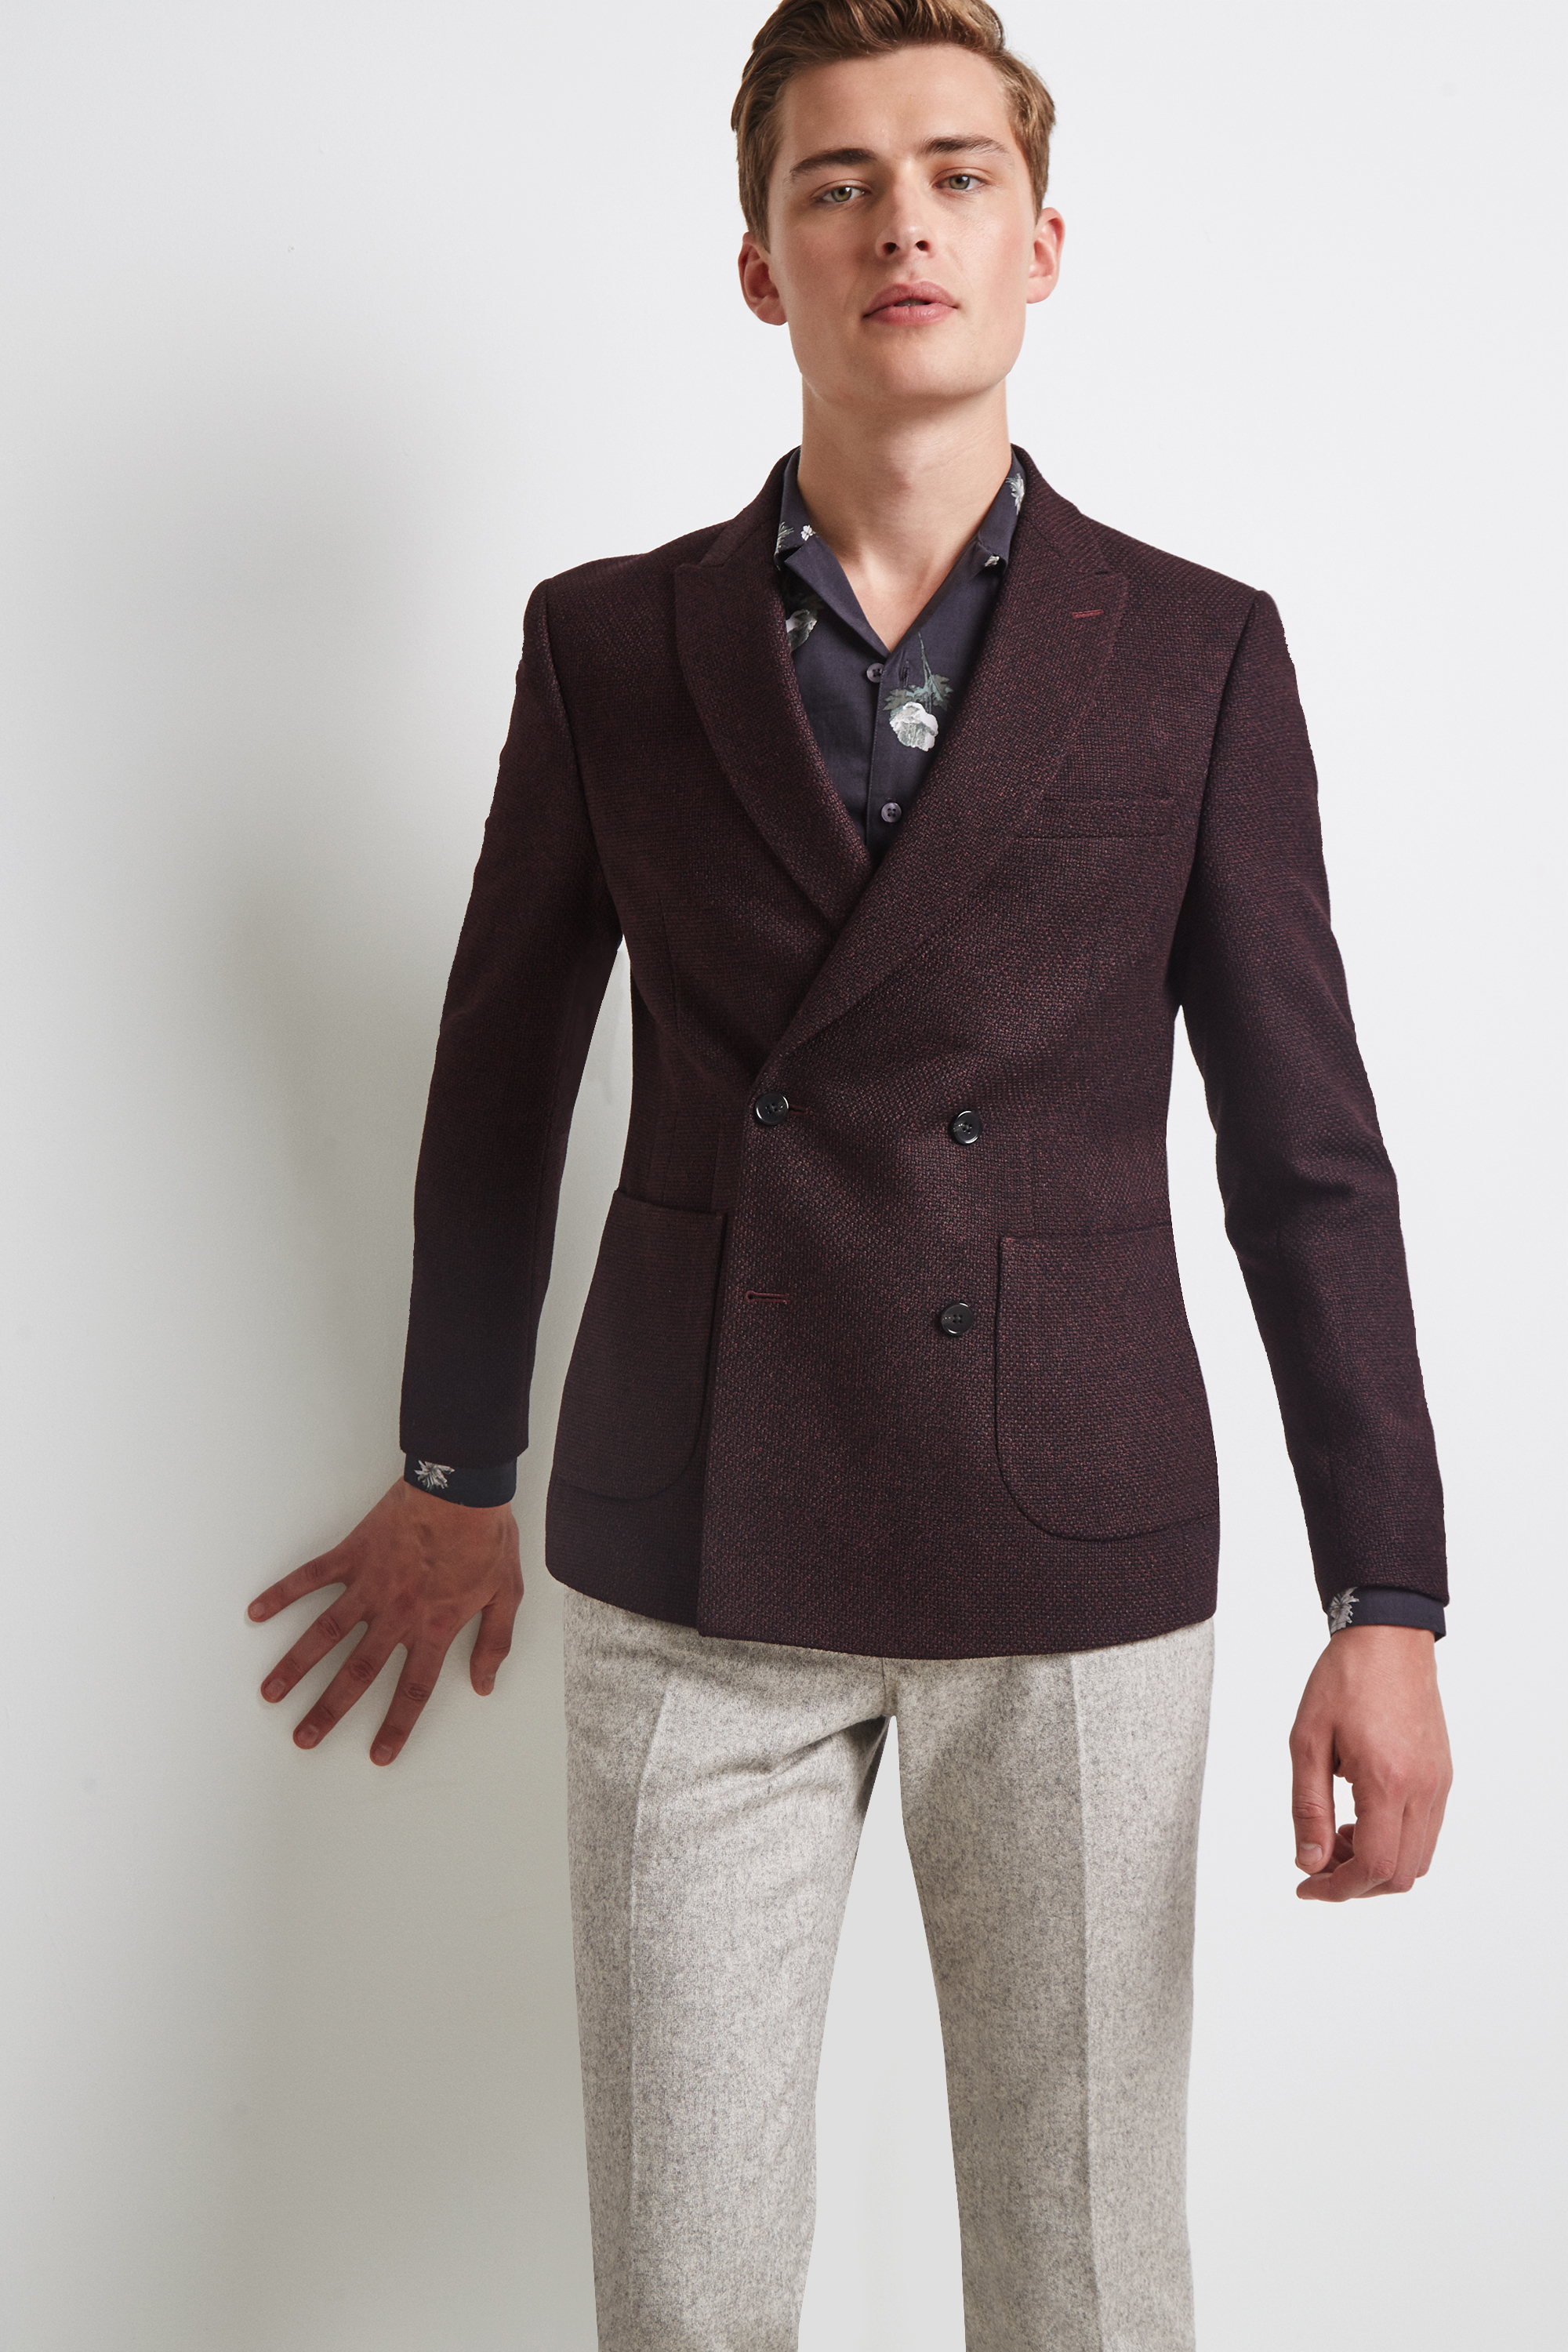 Moss Bros Moss London Skinny Fit Burgundy Knit Double Breasted Jacket